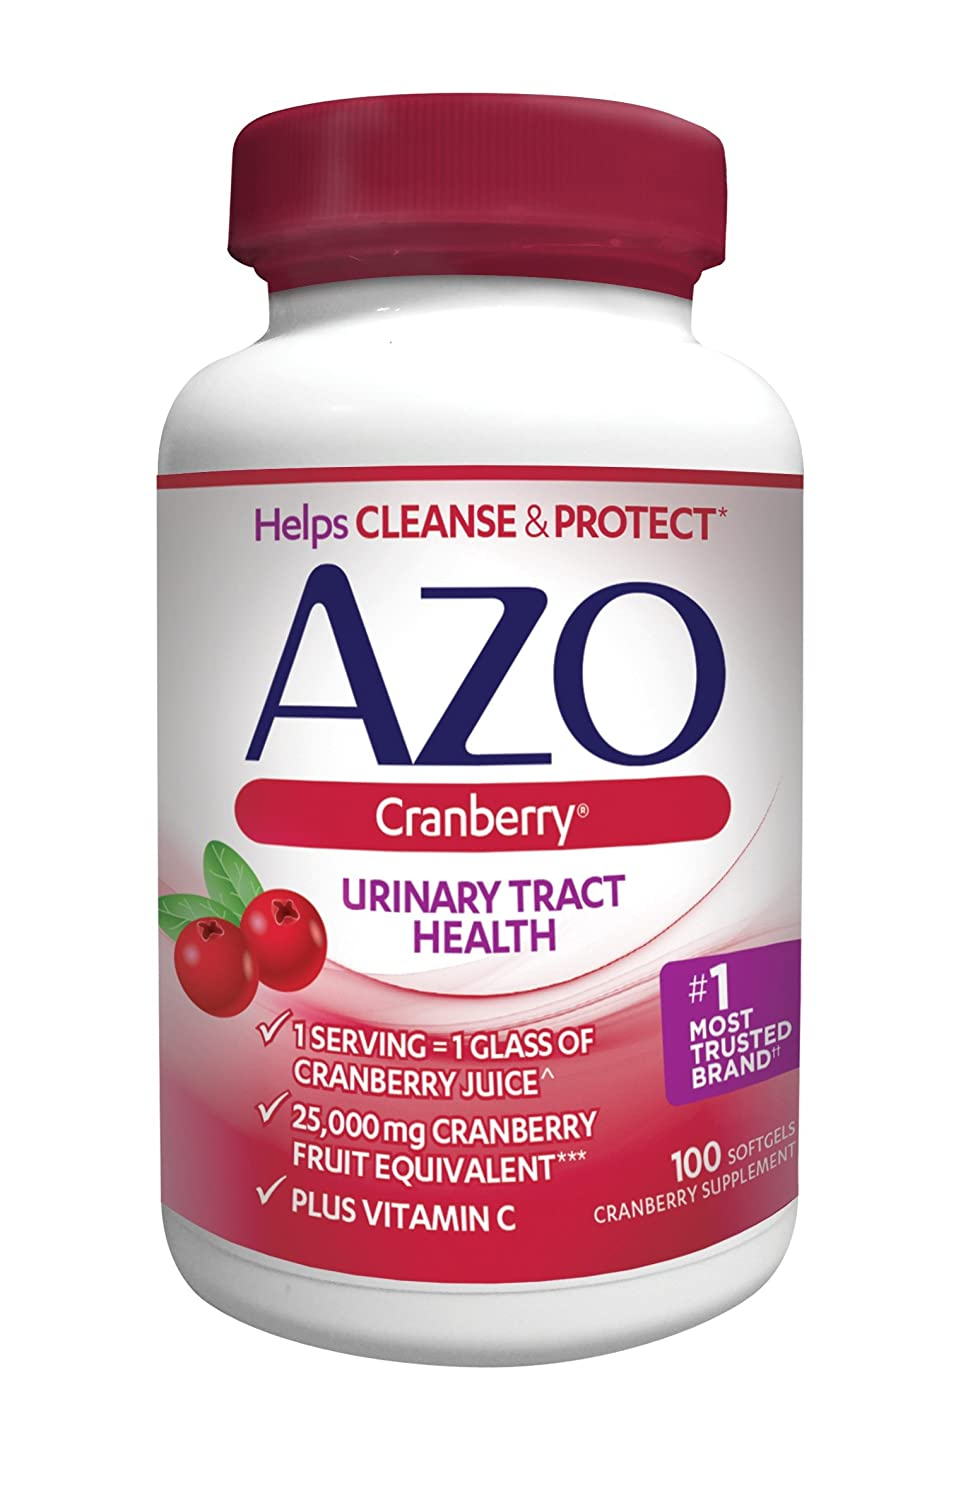 AZO Cranberry Urinary Tract Health Dietary Supplement | 1 Serving = 1 Glass  of Cranberry Juice| Helps